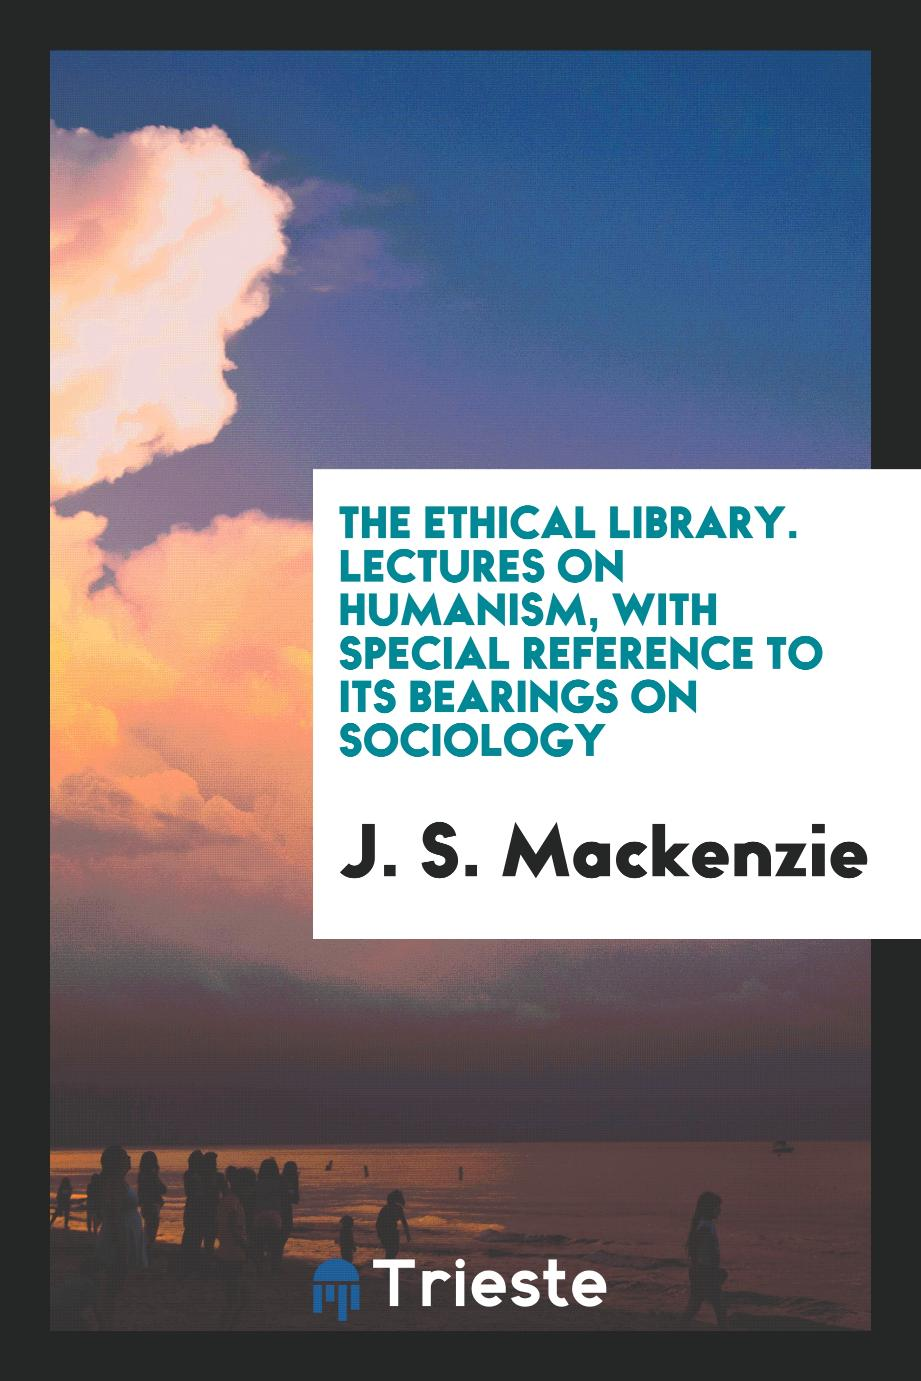 The ethical library. Lectures on humanism, with special reference to its bearings on sociology